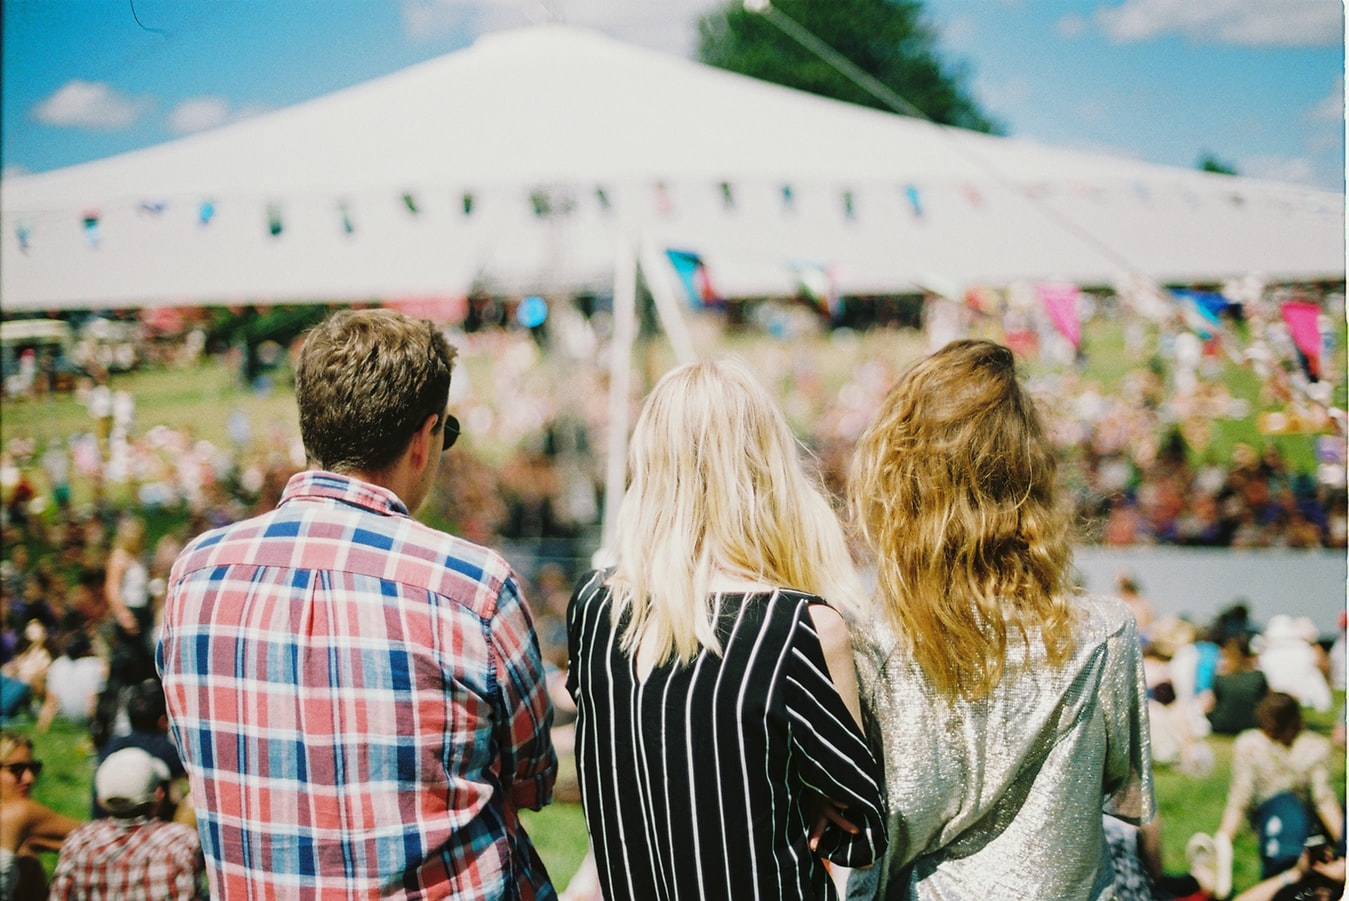 6 Techniques to Brand Your Event and Make it Stand Out